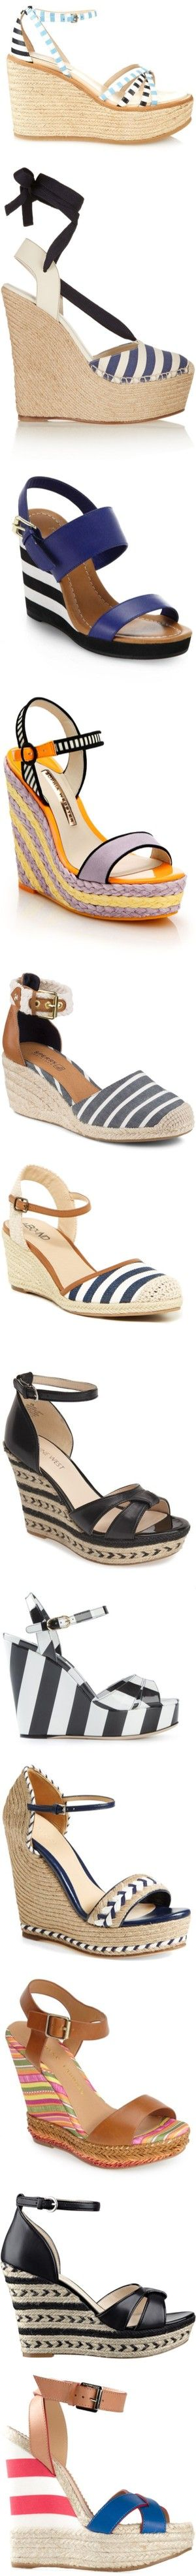 Summer Stripes: Cute Wedges by polyvore-editorial on Polyvore featuring stripedwedges, shoes, sandals, blue stripe, heels, leather wedge sandals, strappy leather sandals, strap sandals, blue strappy sandals and leather strap sandals